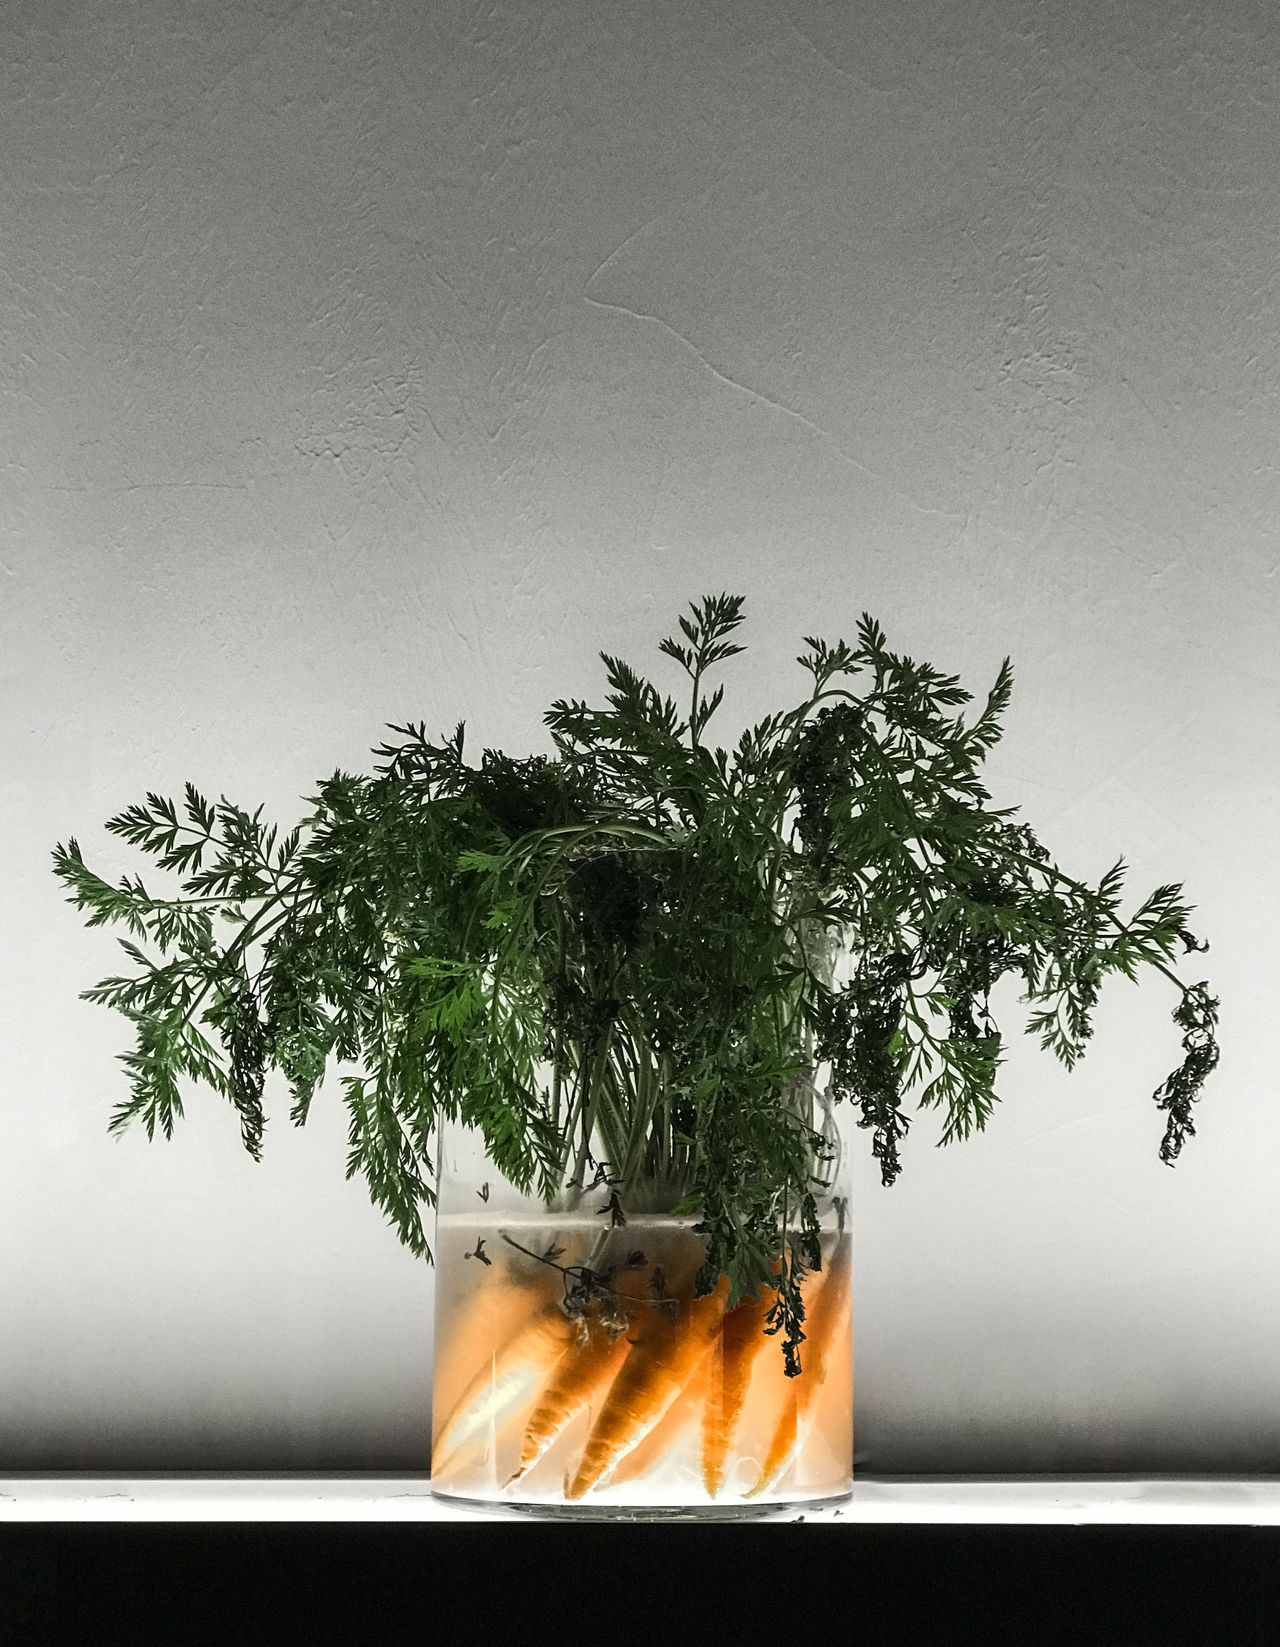 Carrots Close-up Food Foodphotography Freshness Glass Growth Healthy Healthy Eating Healthy Food Healthy Lifestyle Illuminated Indoors  Interior Decorating Interior Style Minimal Minimalism Nature Plant Potted Plant Vase Vegan Vegetable Vegetables Vegetarian Food iphone Crop